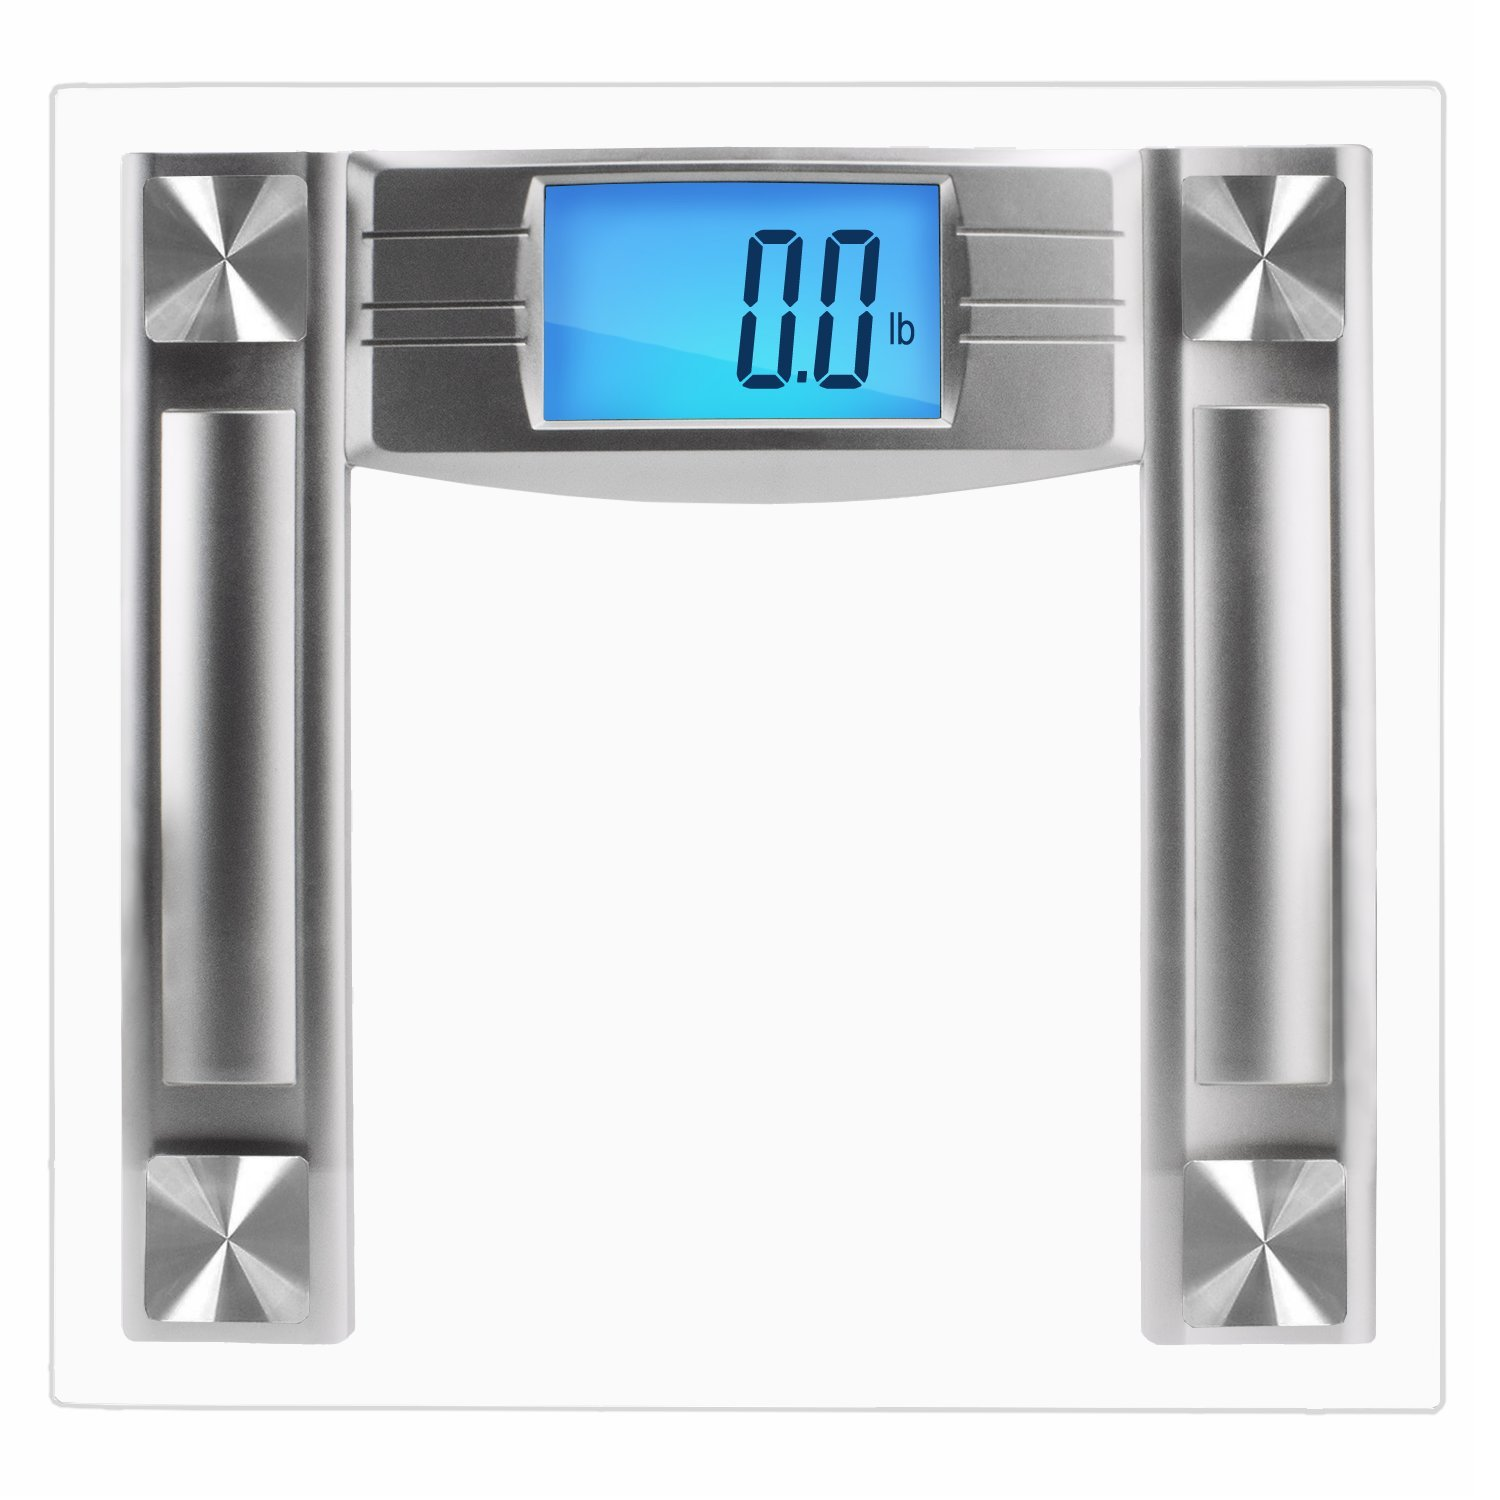 SlimSmart Modern Bathroom Scale with Large Digital Display & Automatic Step-On Start Technology for Tracking Diet & Weight - Maximum Capacity of 400lbs/225kg by SlimSmart